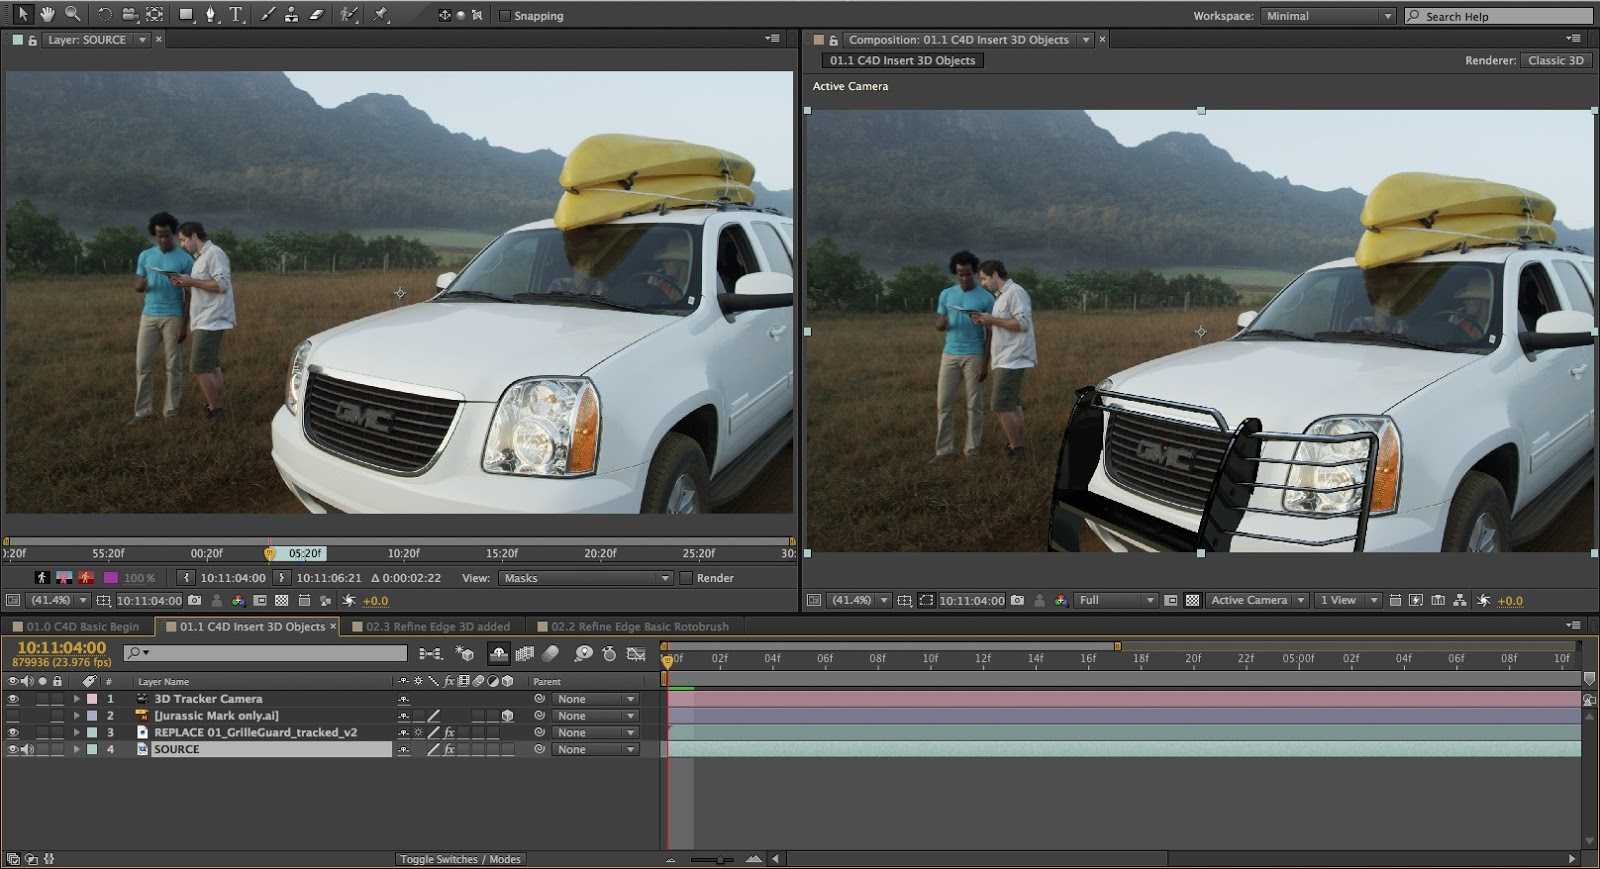 Adobe After Effects CC 2017 32/64 Bit Free Download - Getintopc